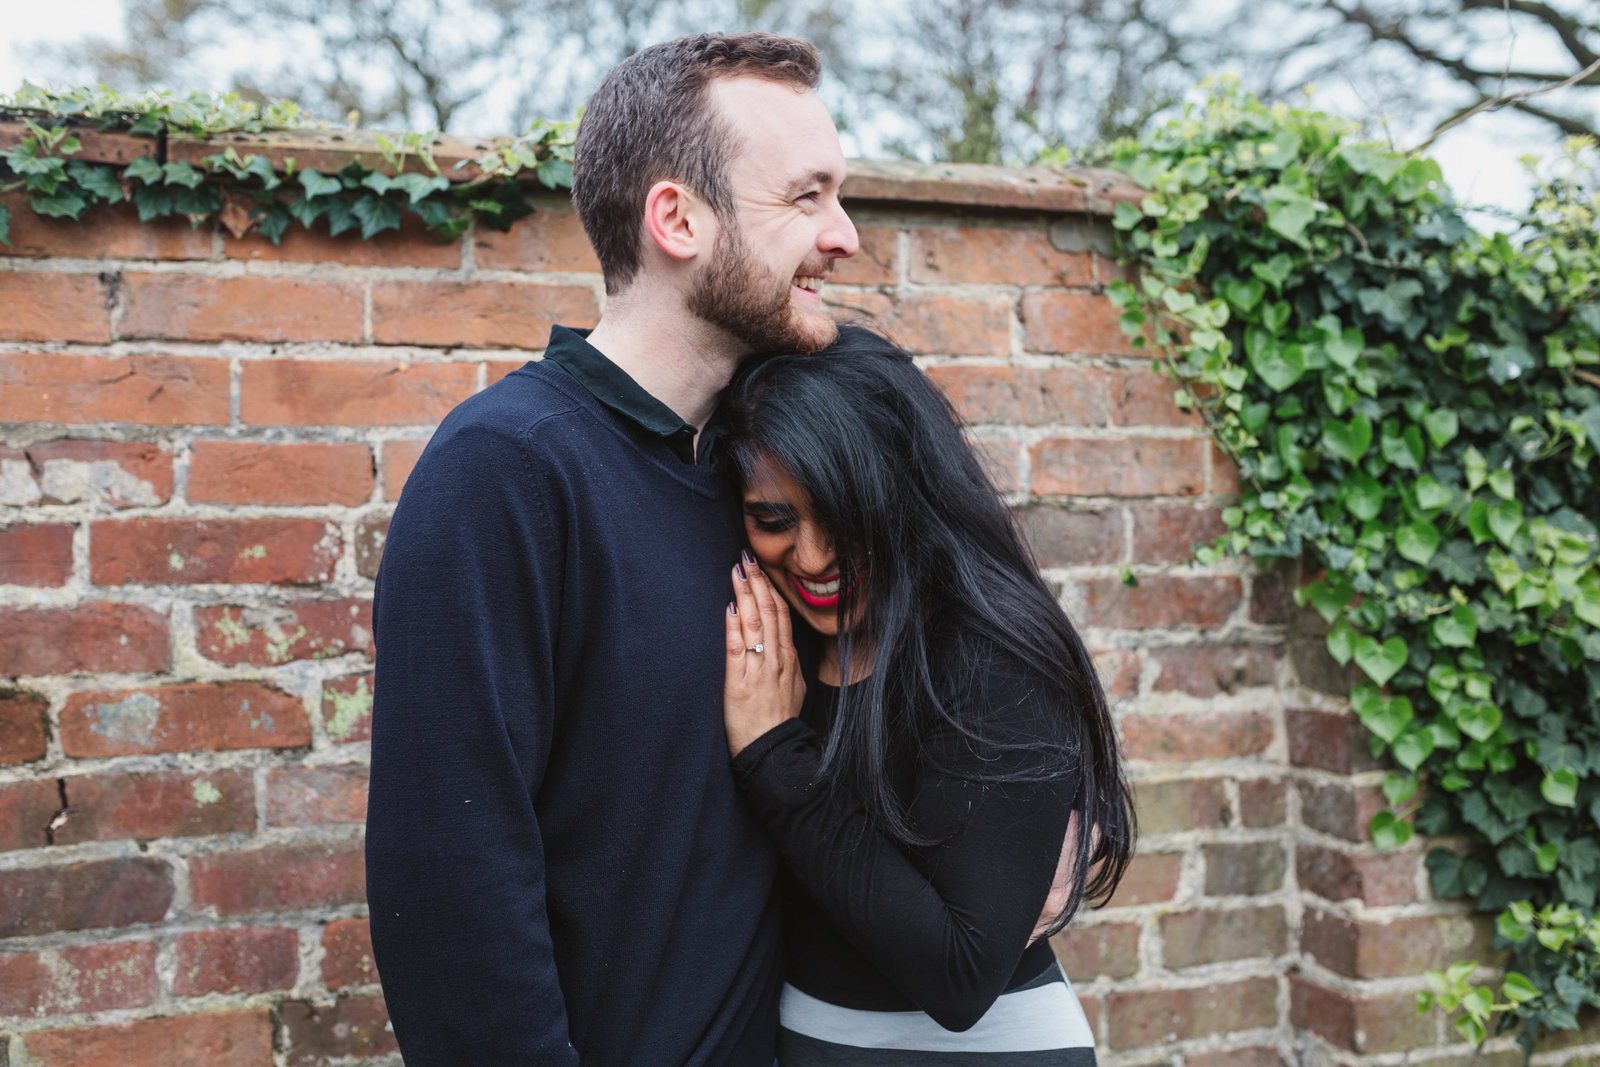 Cuddling engaged couple lean against red brick wall for a natural couples photo